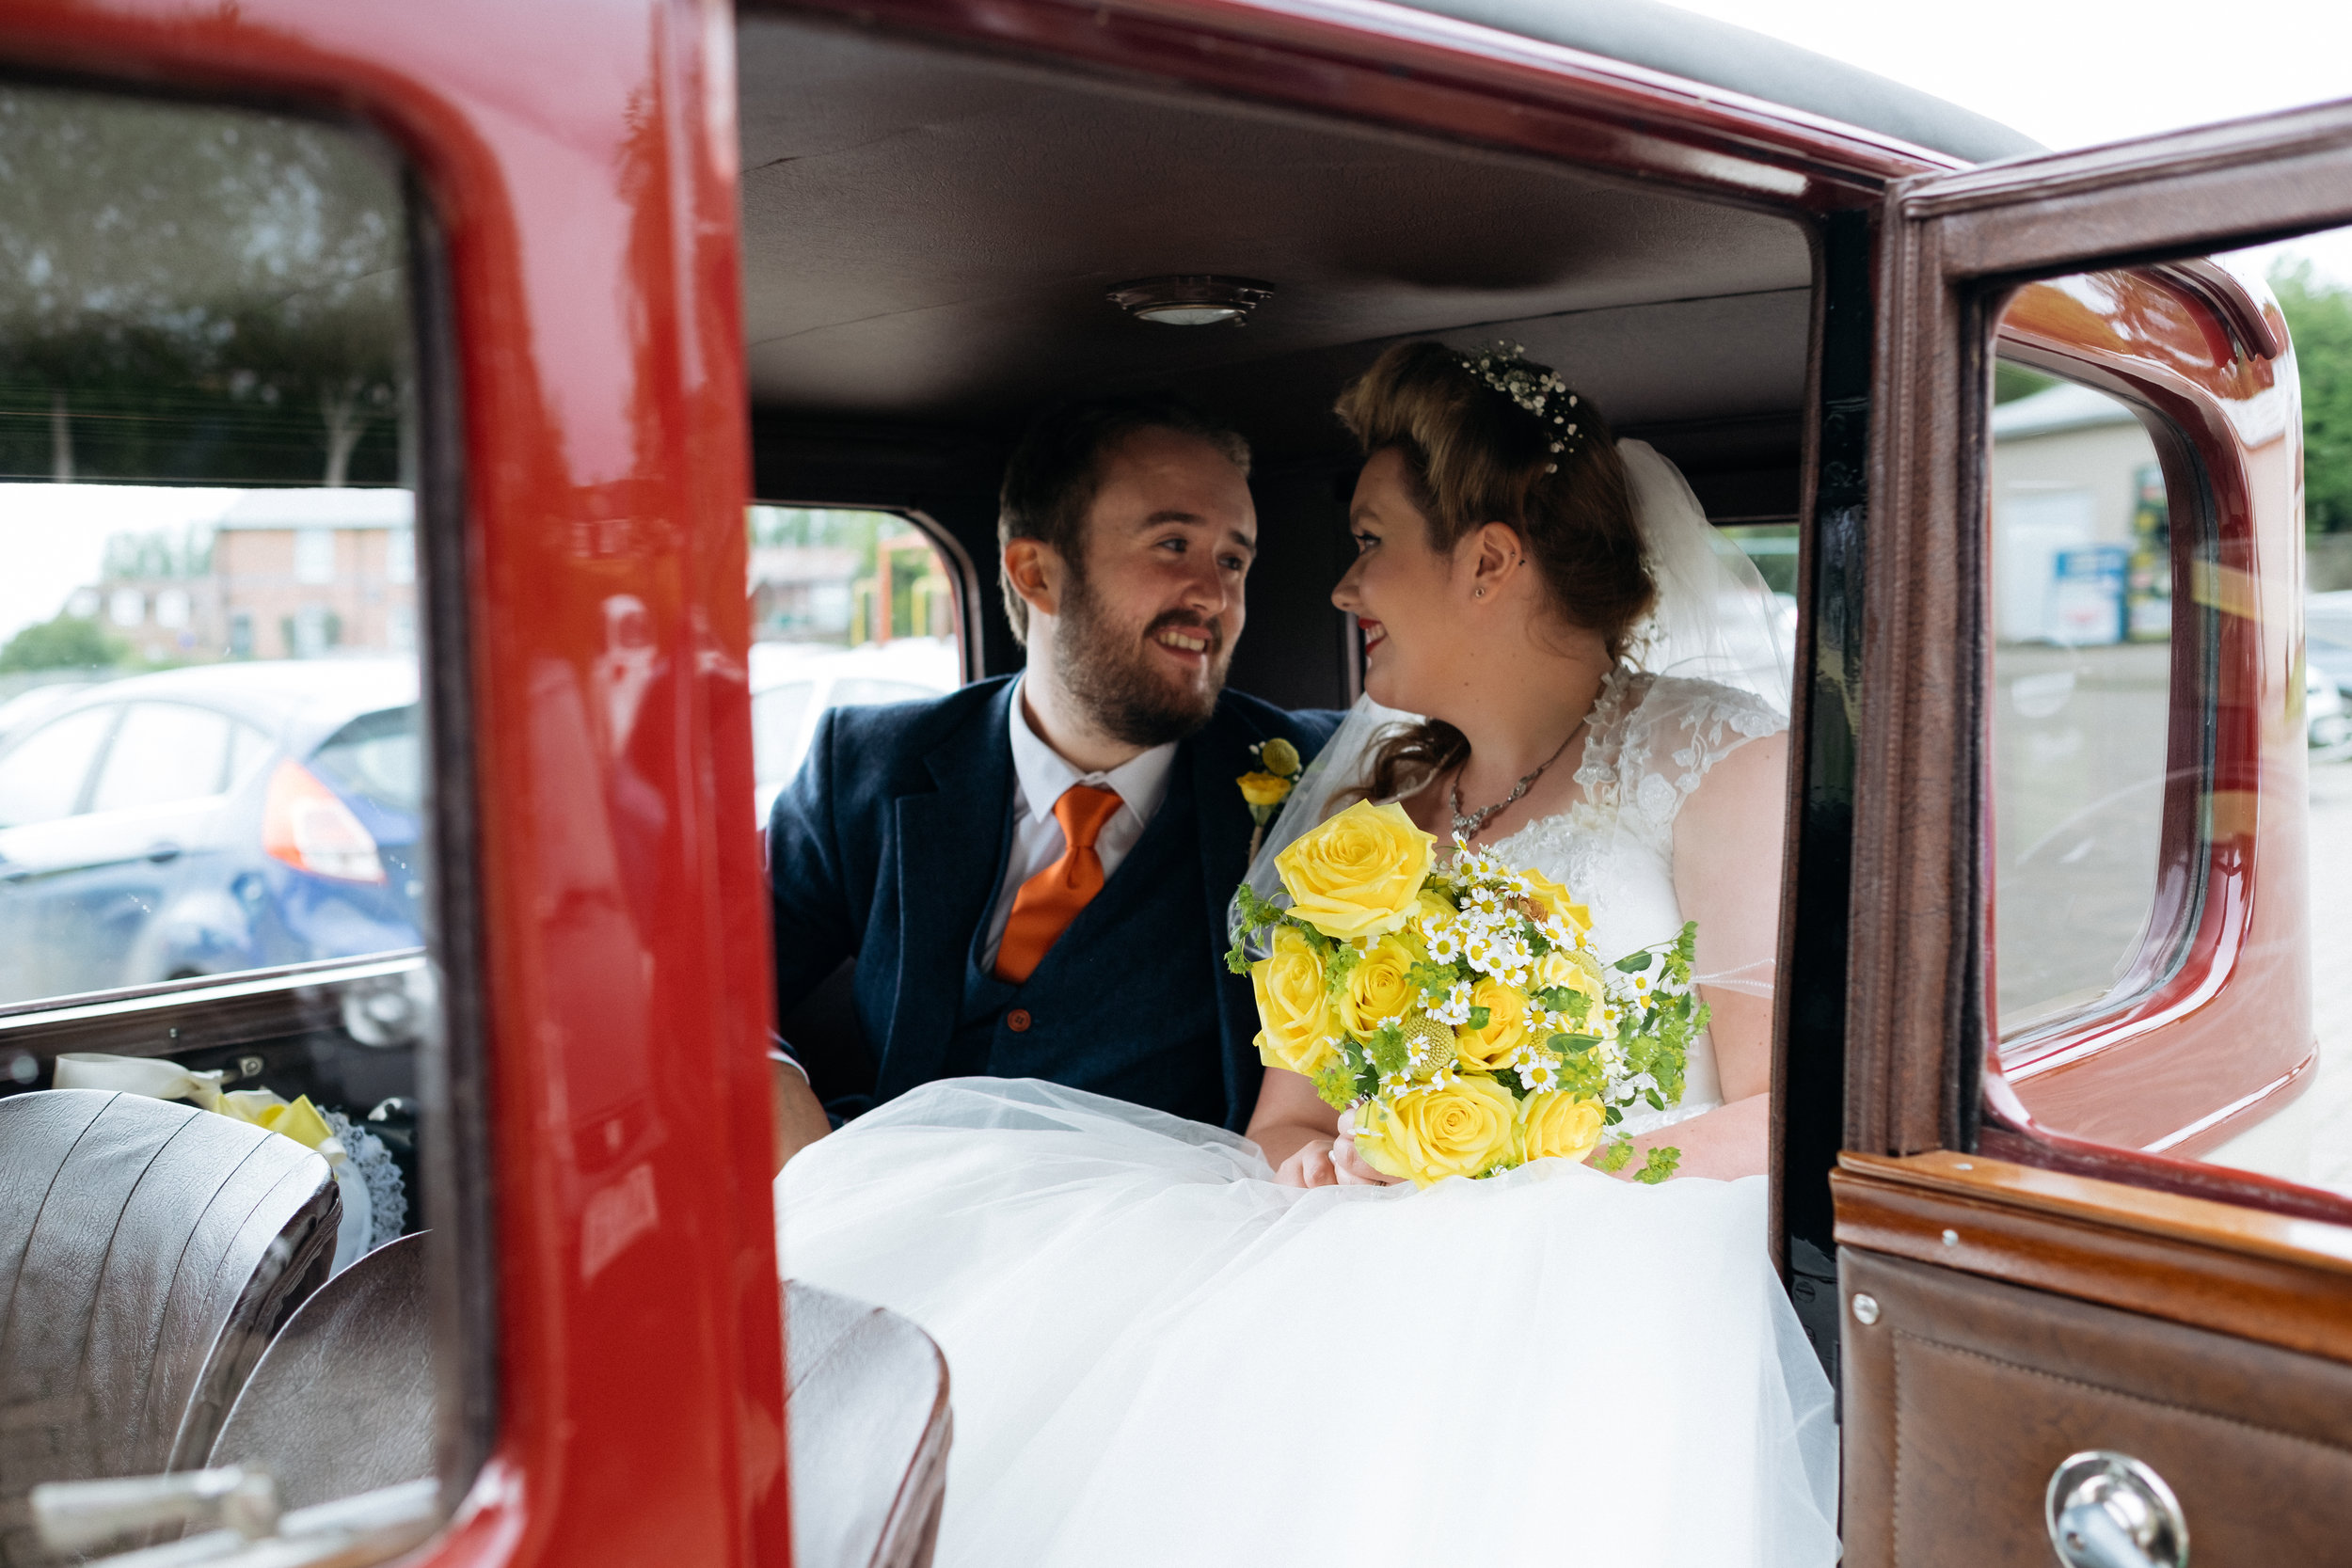 Cute couple in a wedding car